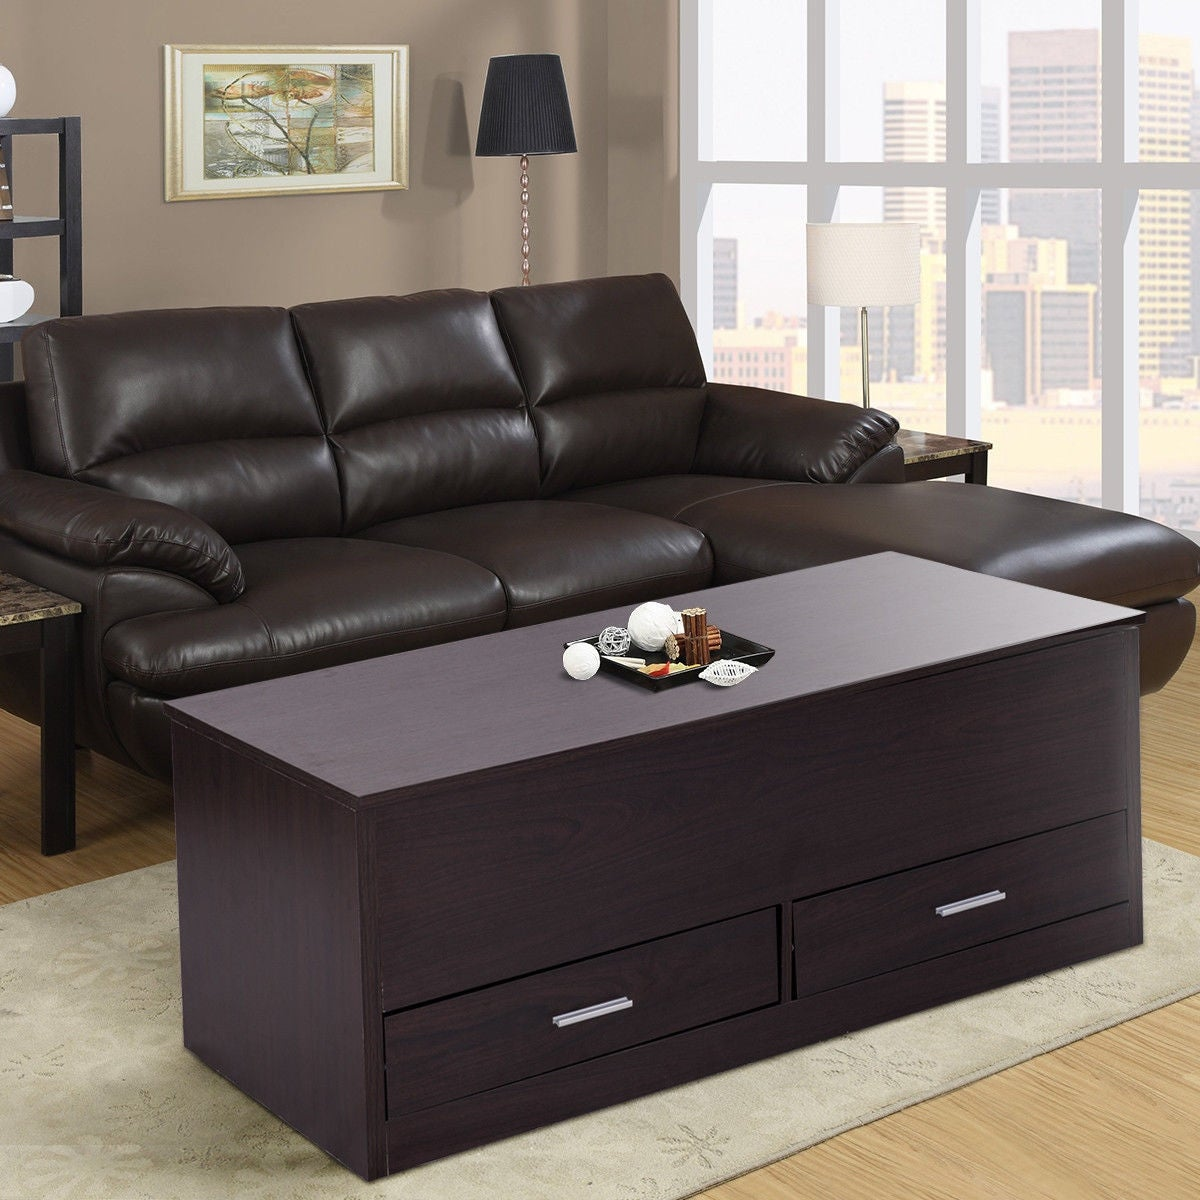 Costway Slide Top Coffee Table W Hidden Compartment And 2 Drawers Living Room Furniture Espresso Free Shipping Today 20489046